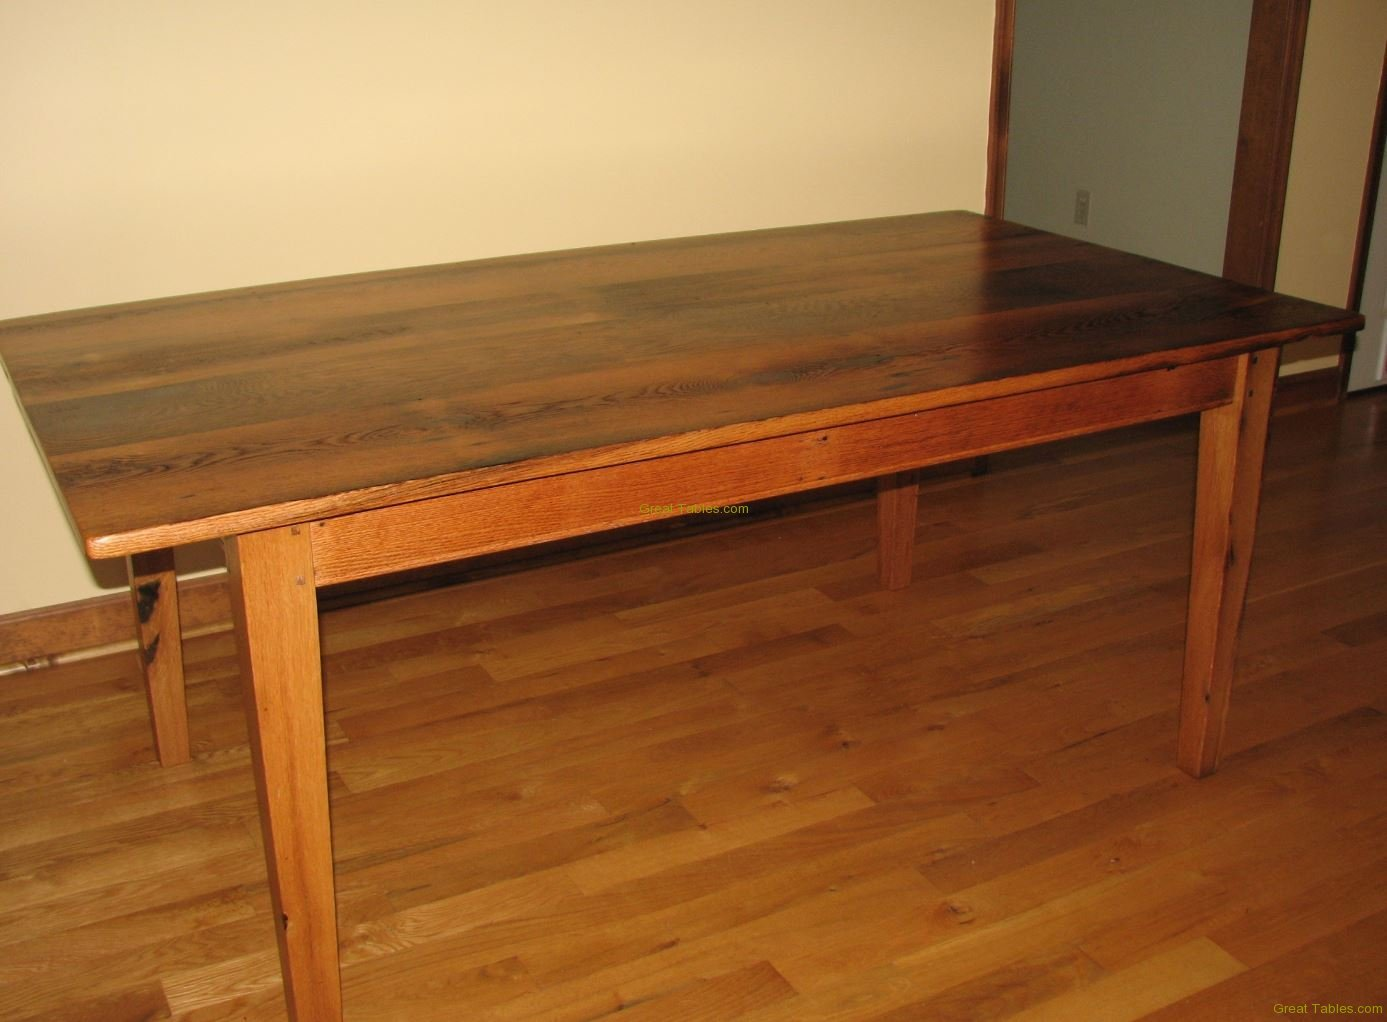 28. Wormy Chestnut Table19